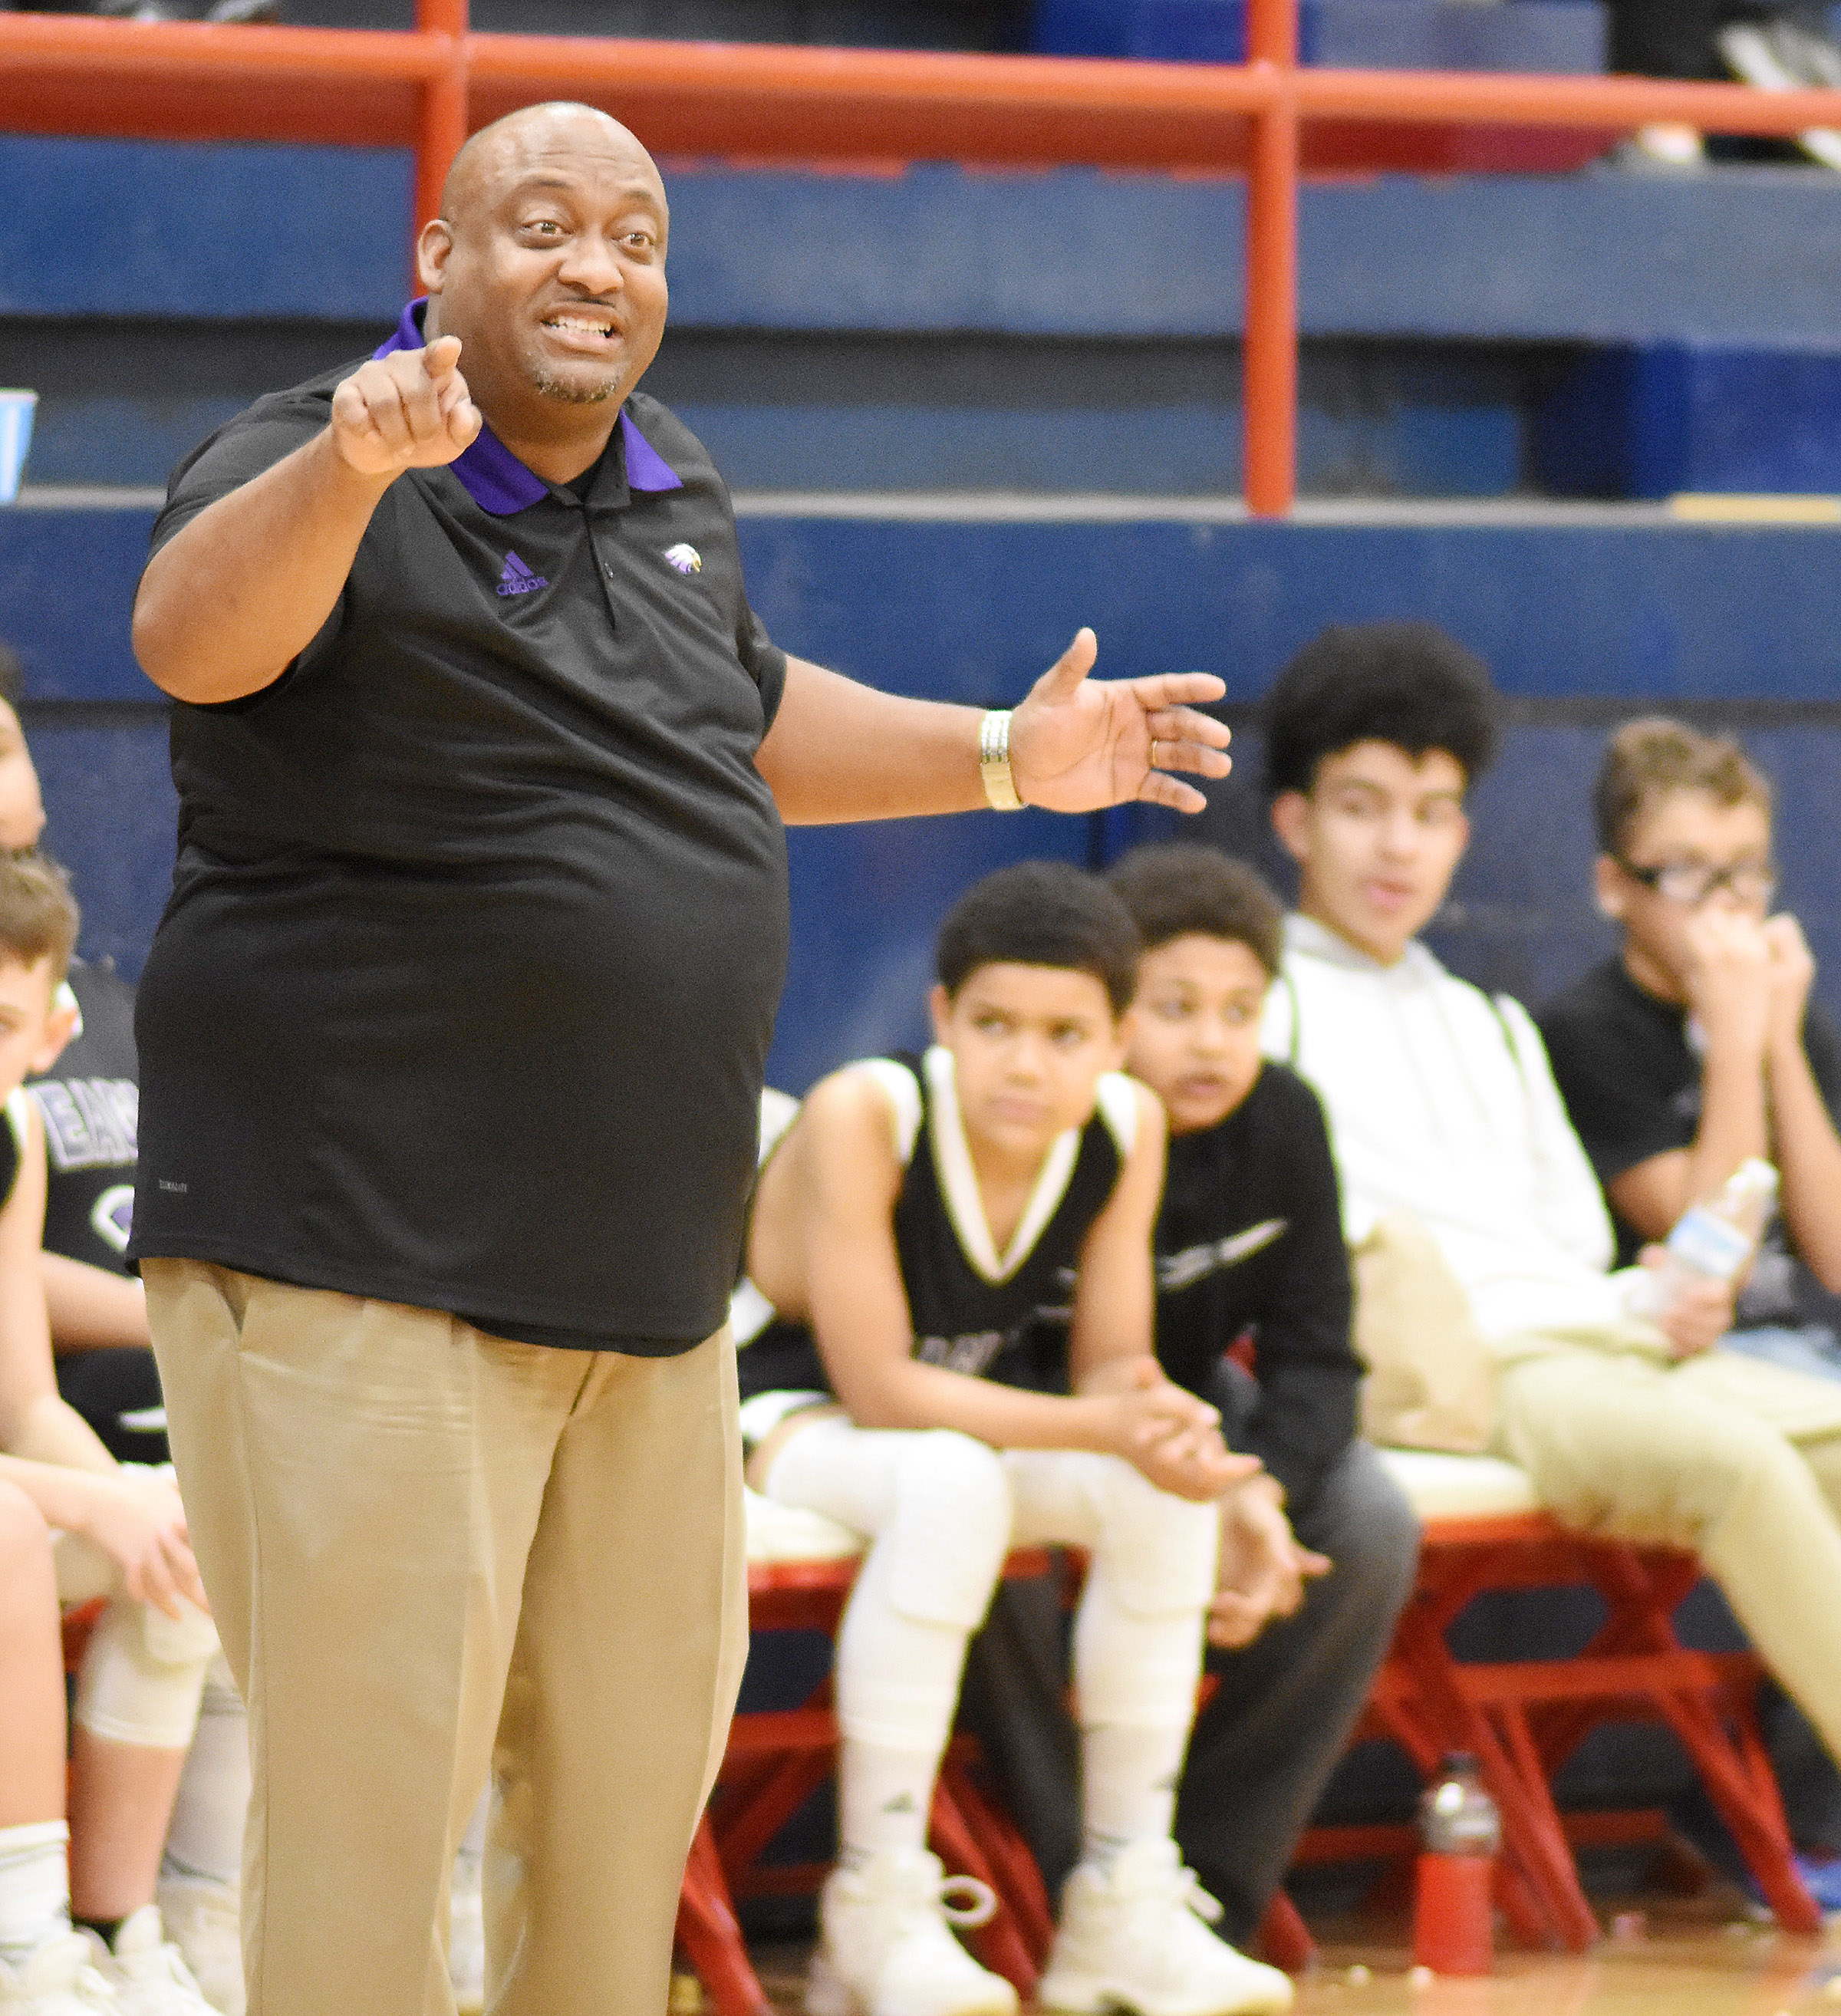 CMS boys' basketball coach Joseph Taylor talks to his players.